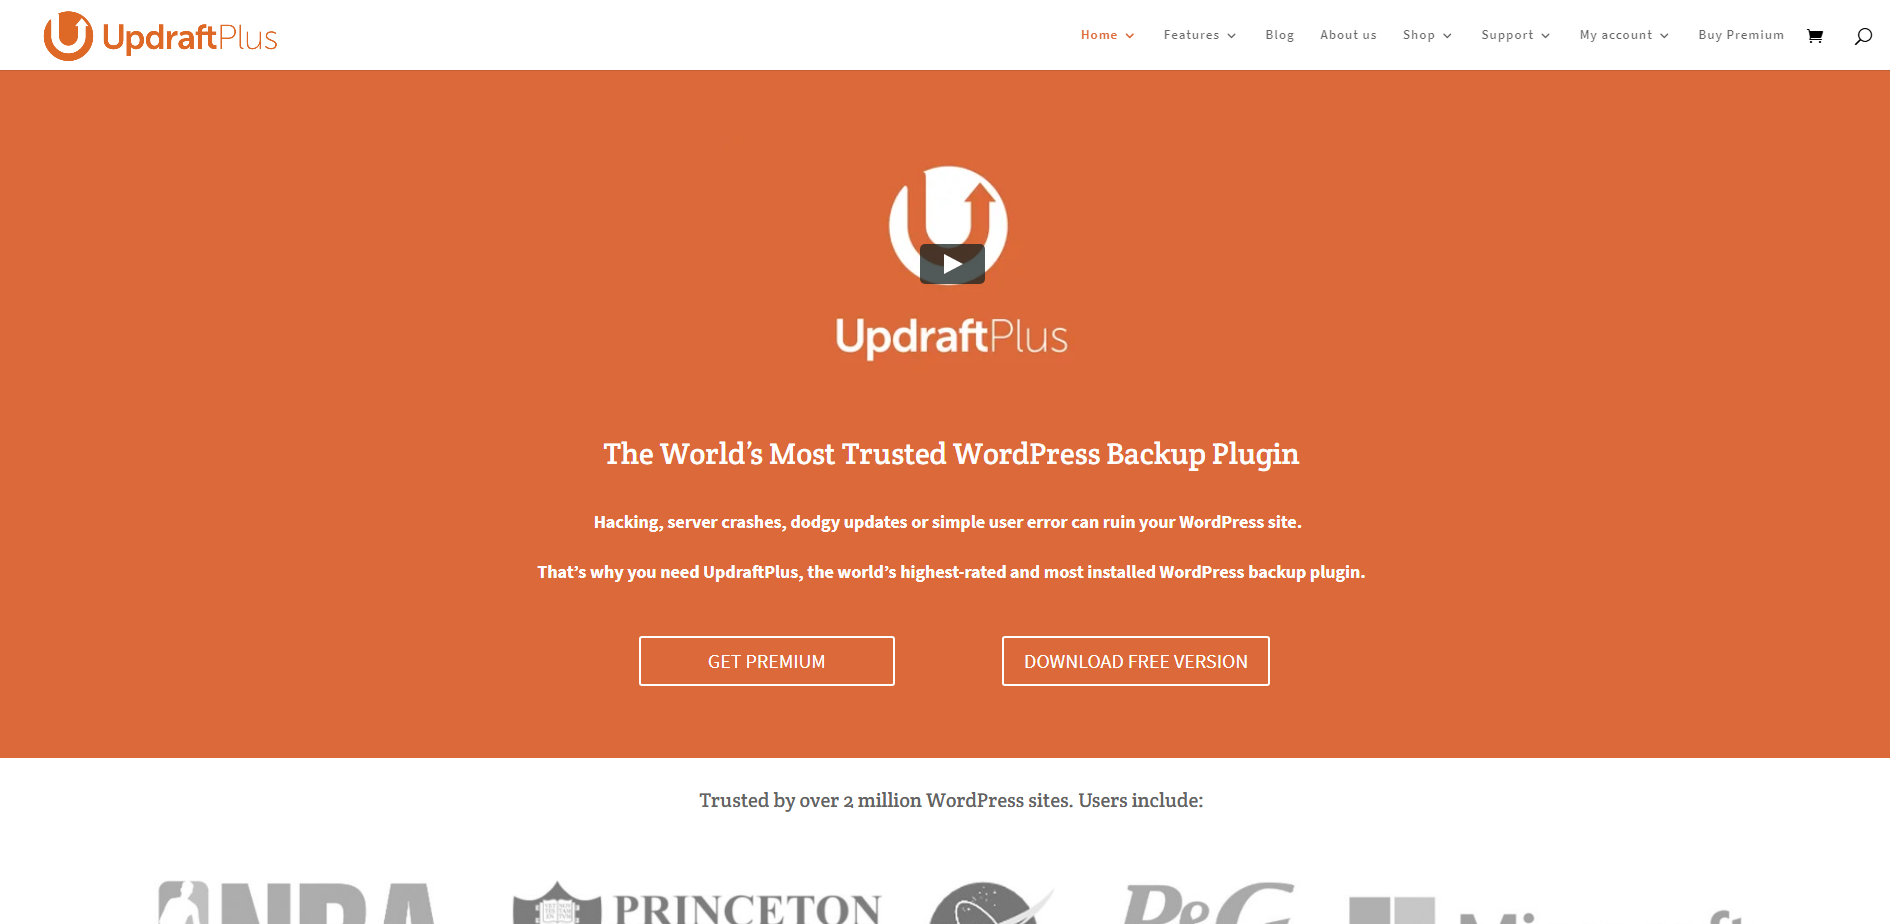 UpdraftPlus | 18 Most Popular WordPress Plugins For Your Business Needs